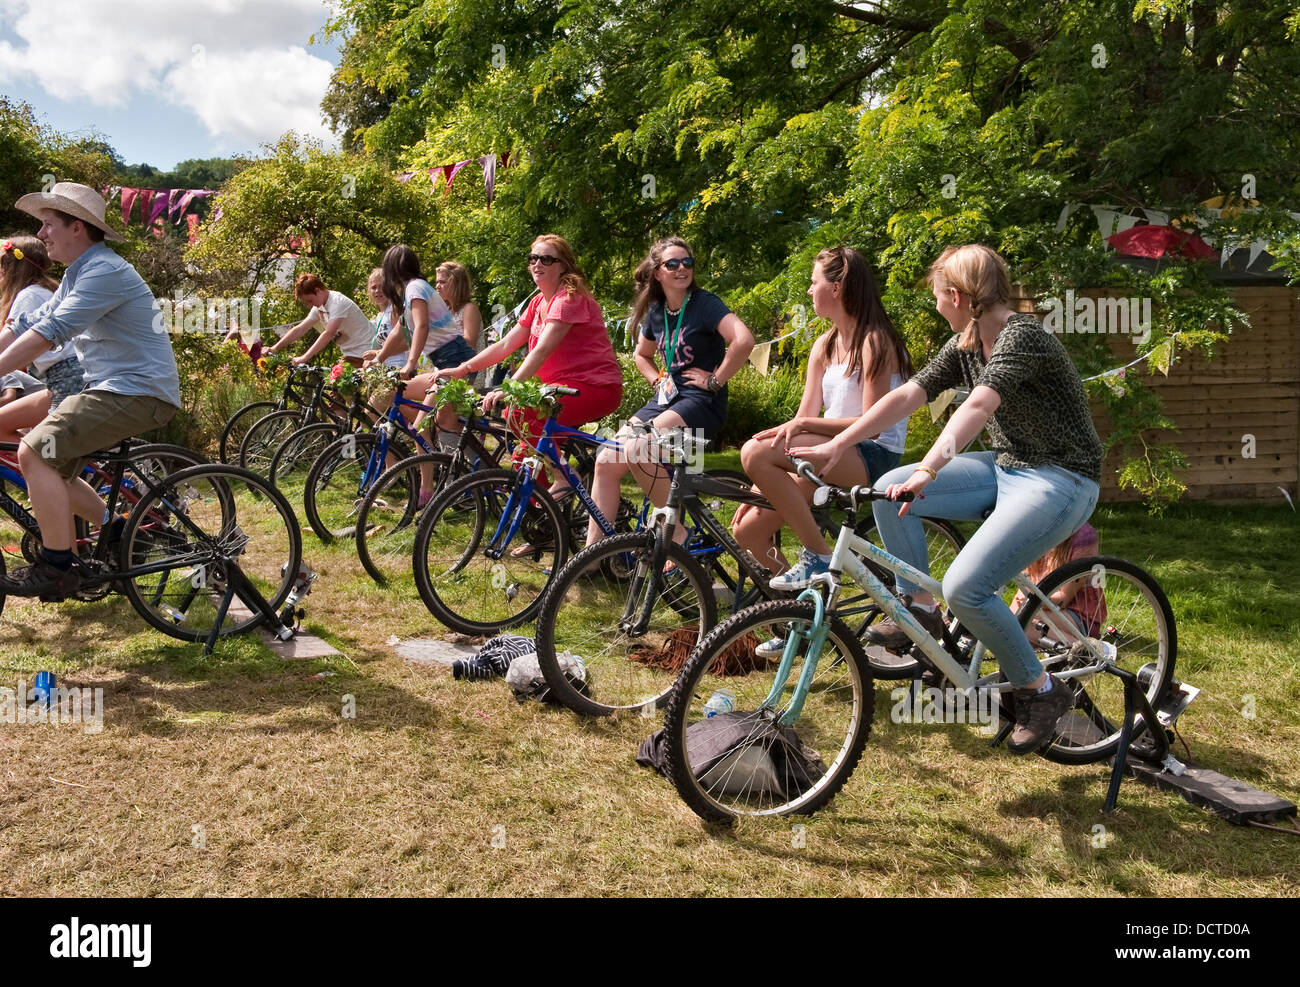 Green Man festival 2013, Glanusk, Wales. Festival goers using bicycle-powered generators to recharge mobiles - Stock Image